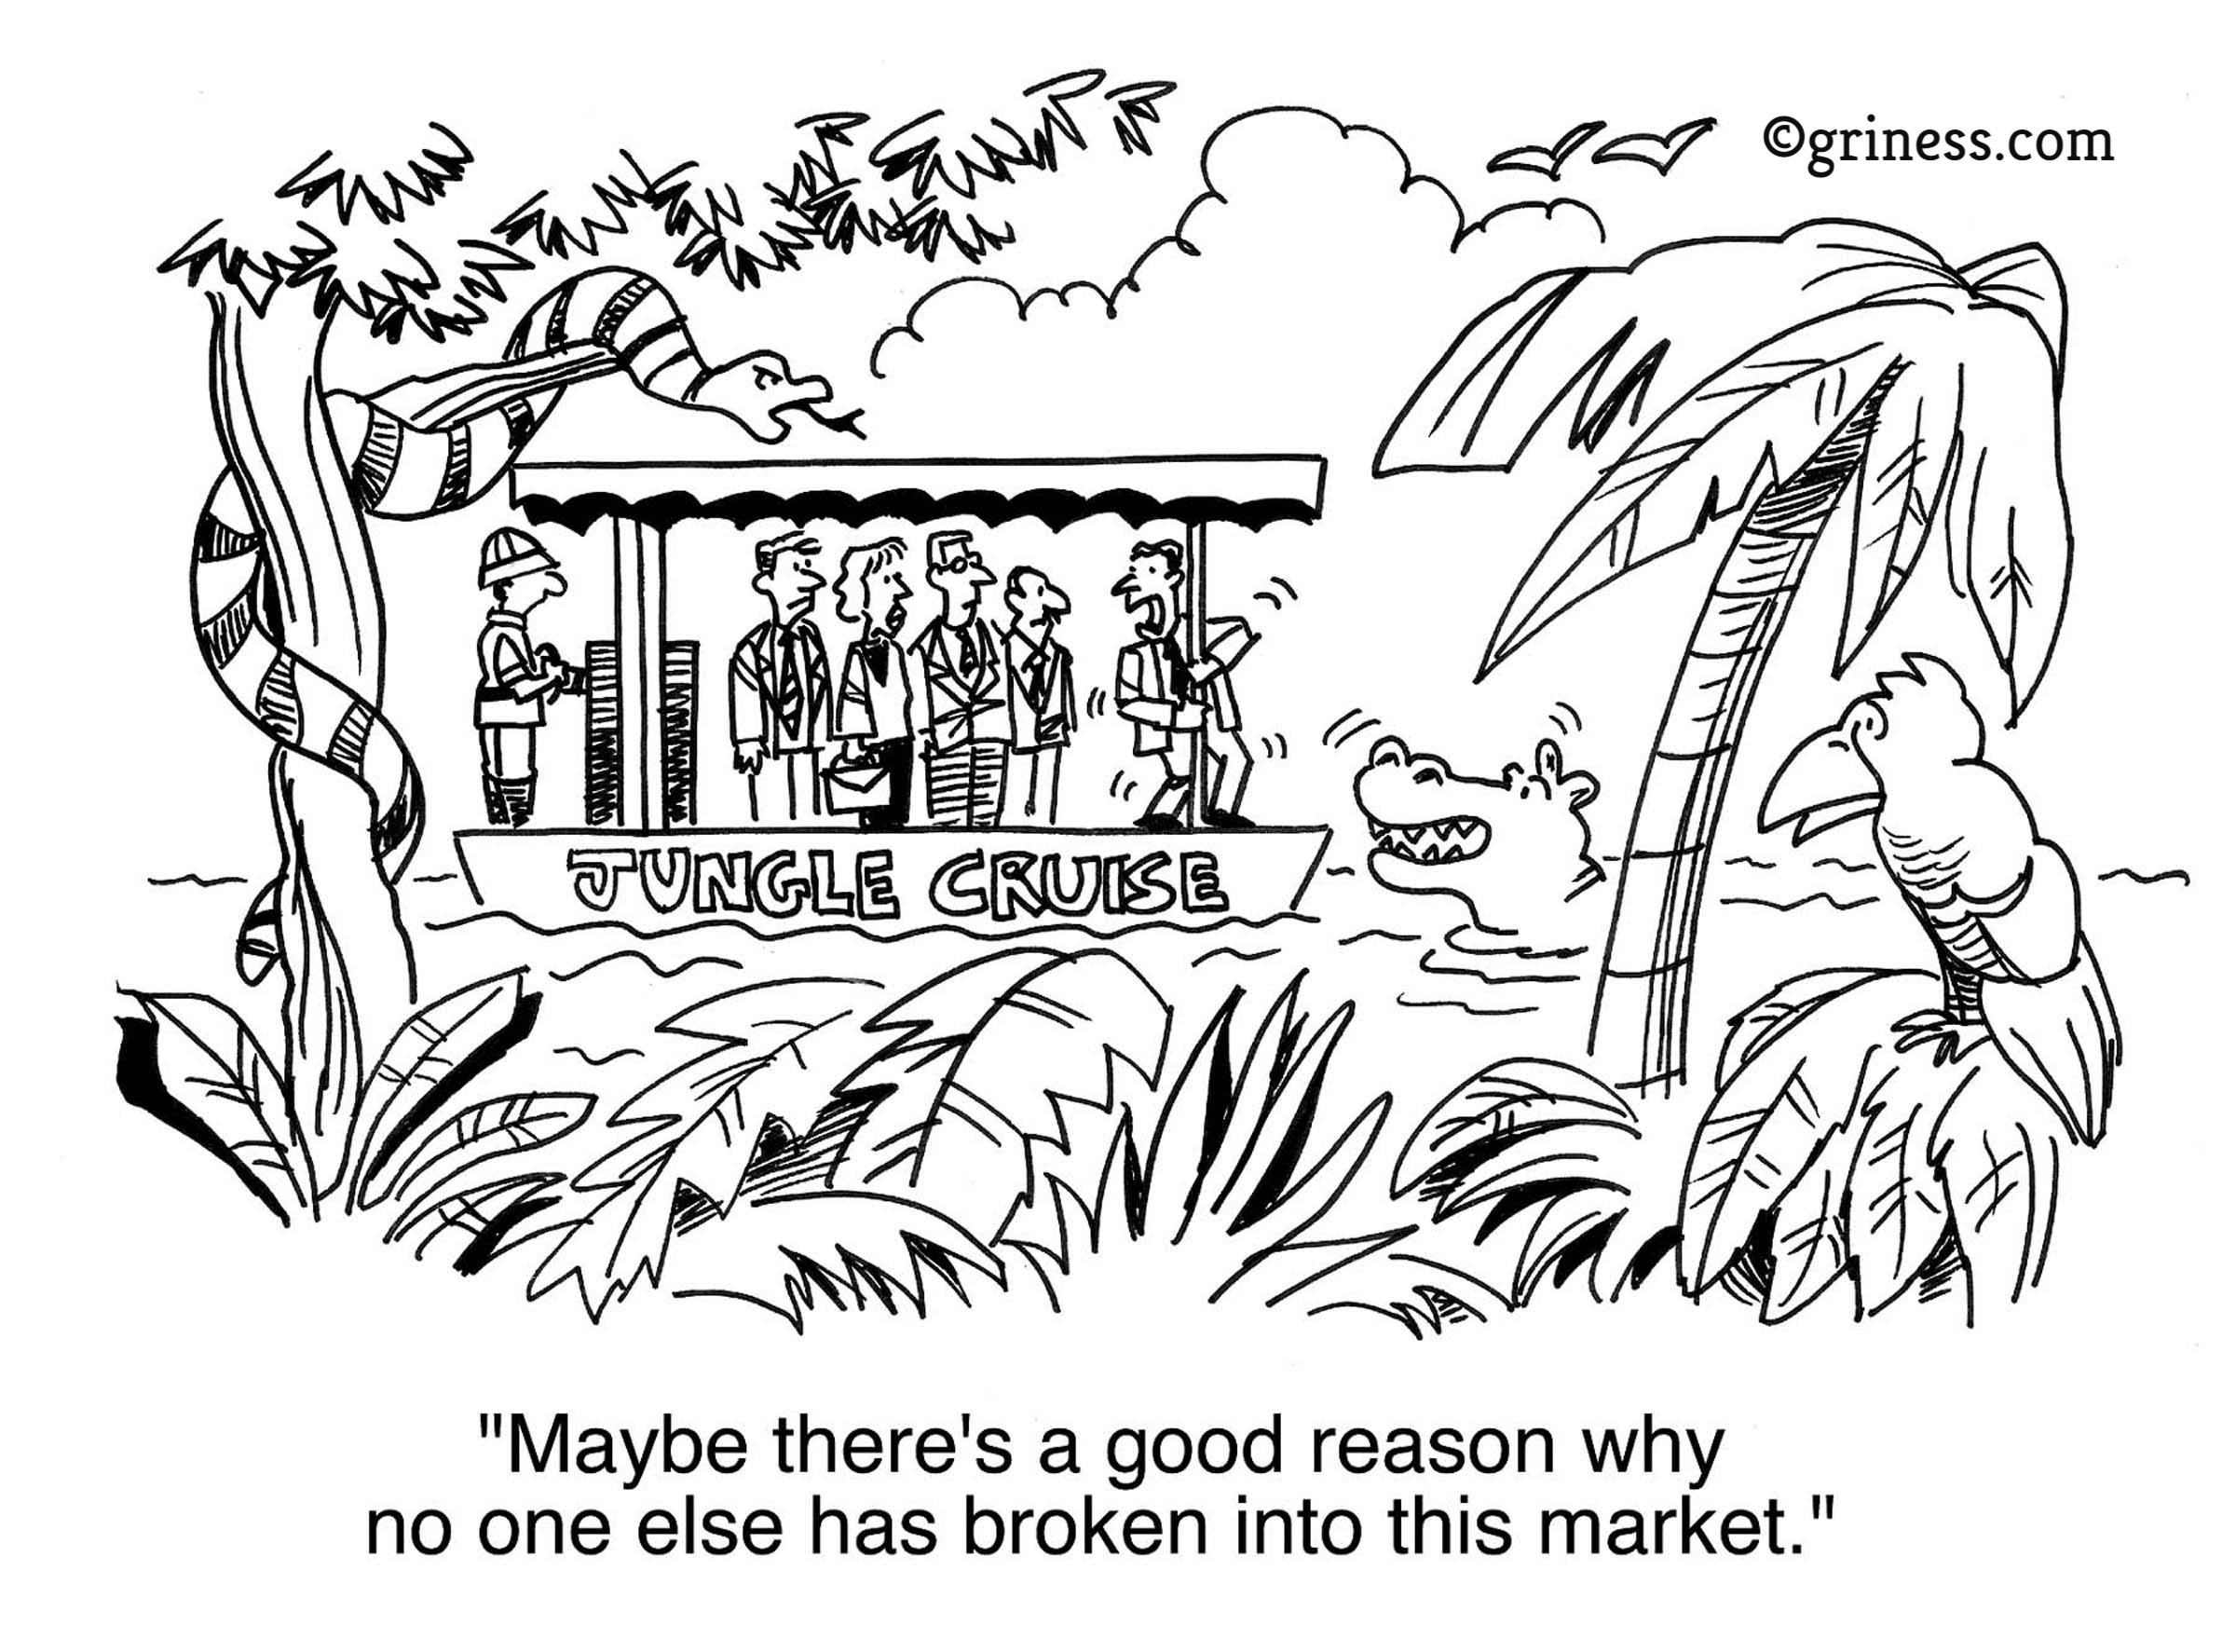 reason no one has broken into this market with griness marketing business cartoons free